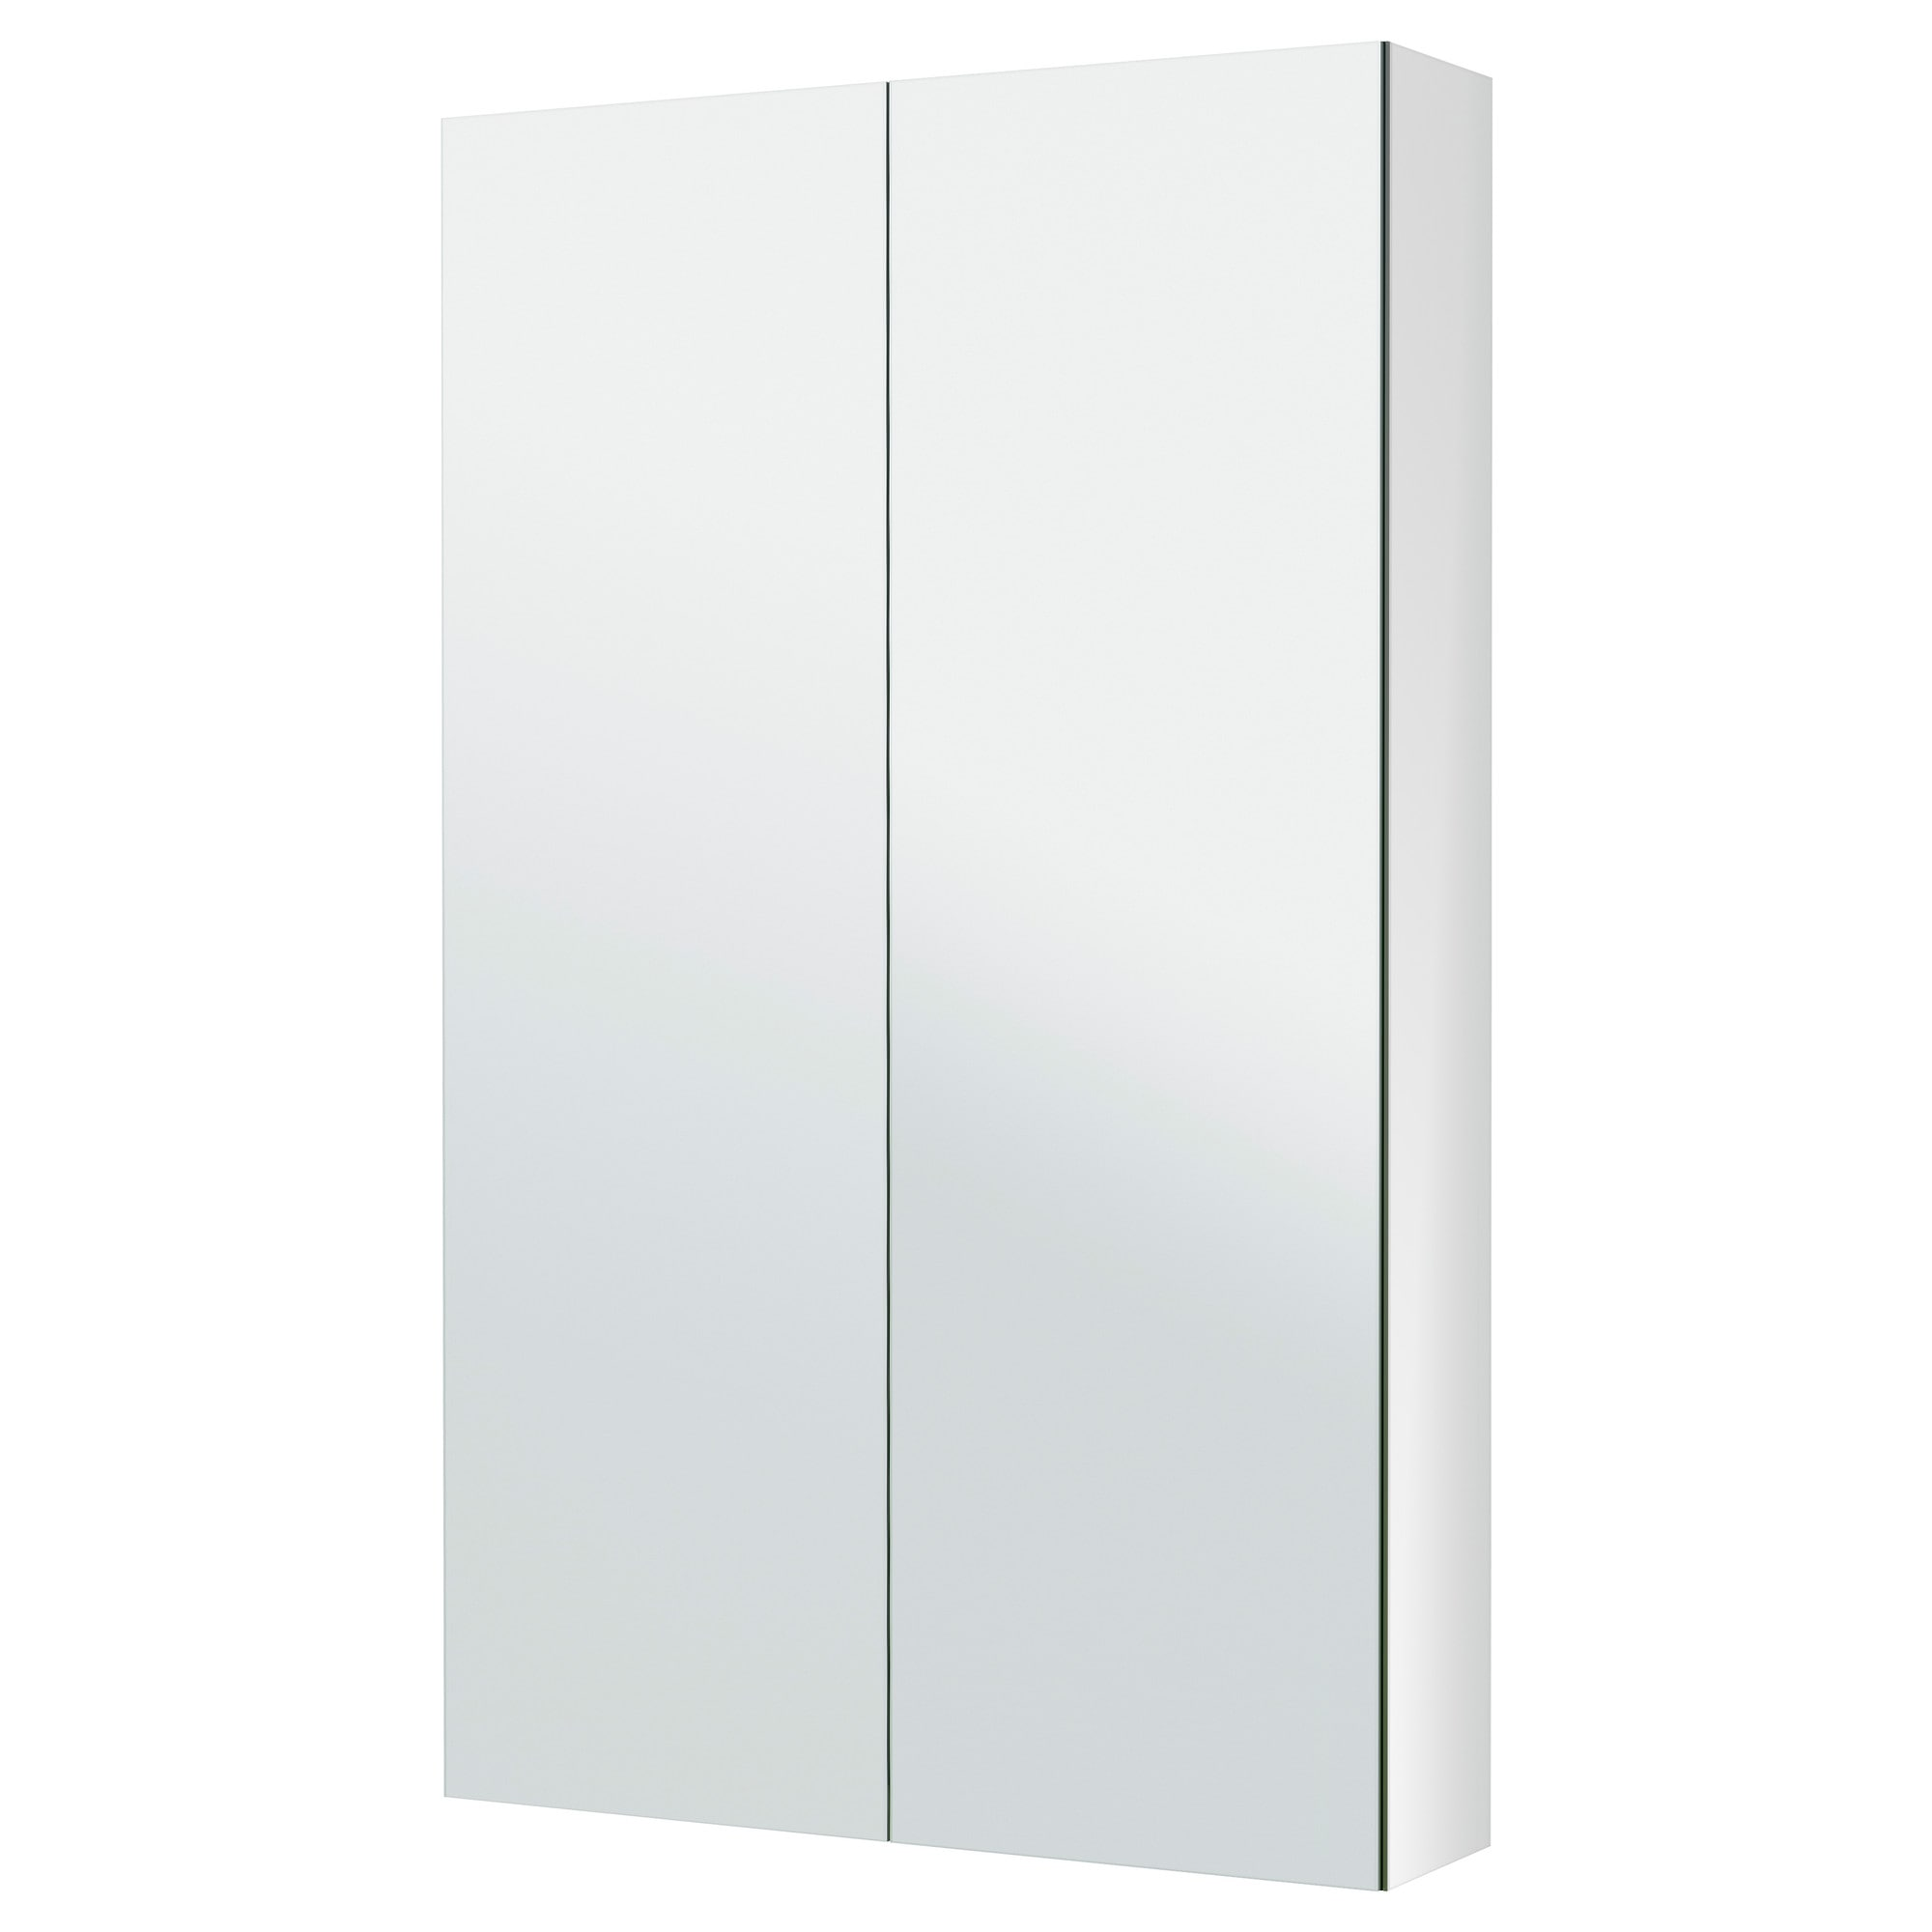 . GODMORGON Mirror cabinet with 2 doors     23 5 8x5 1 2x37 3 4     IKEA